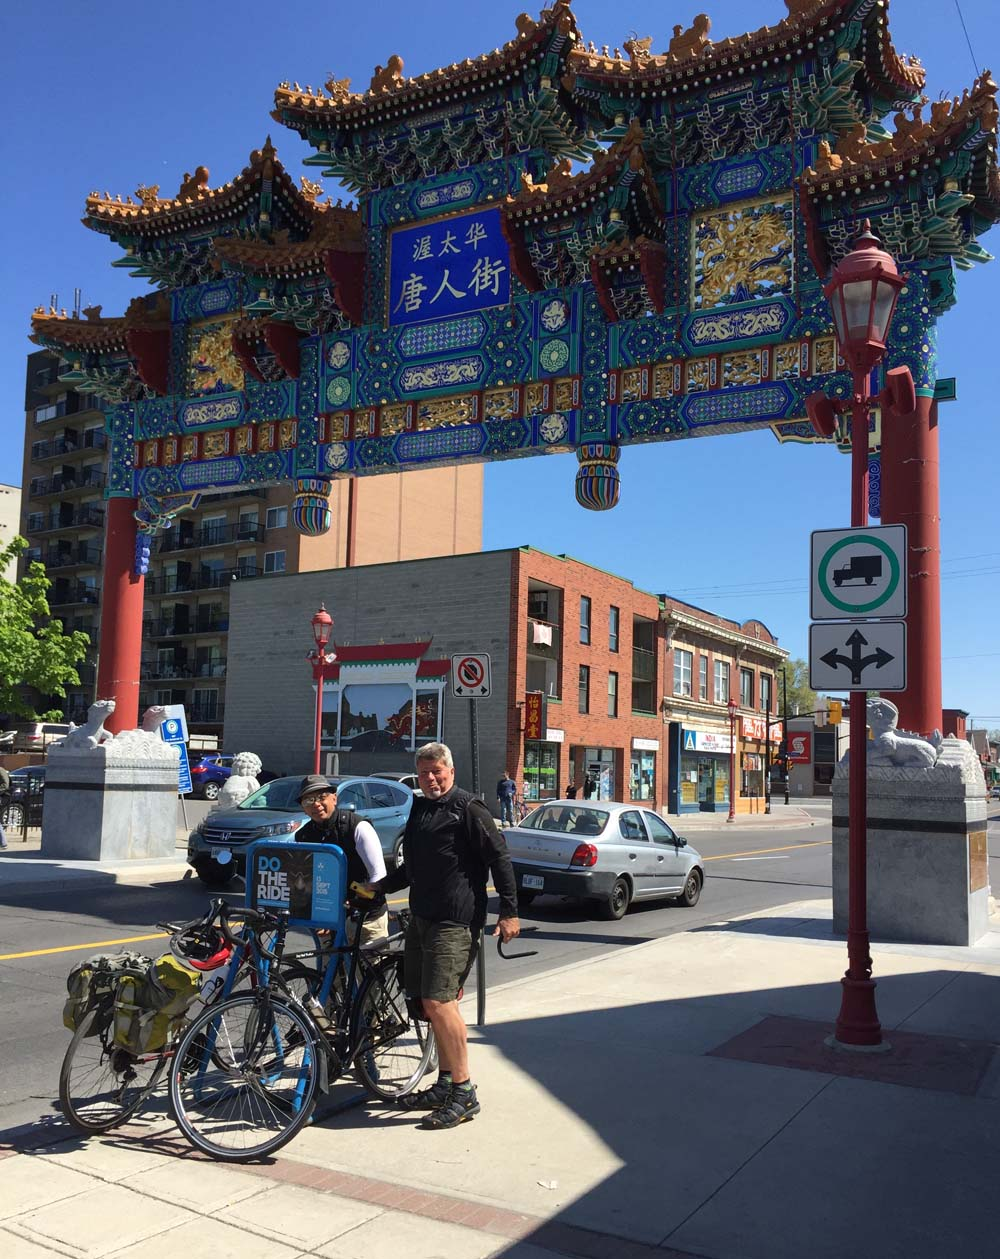 Starting off from the Chinatown Arch